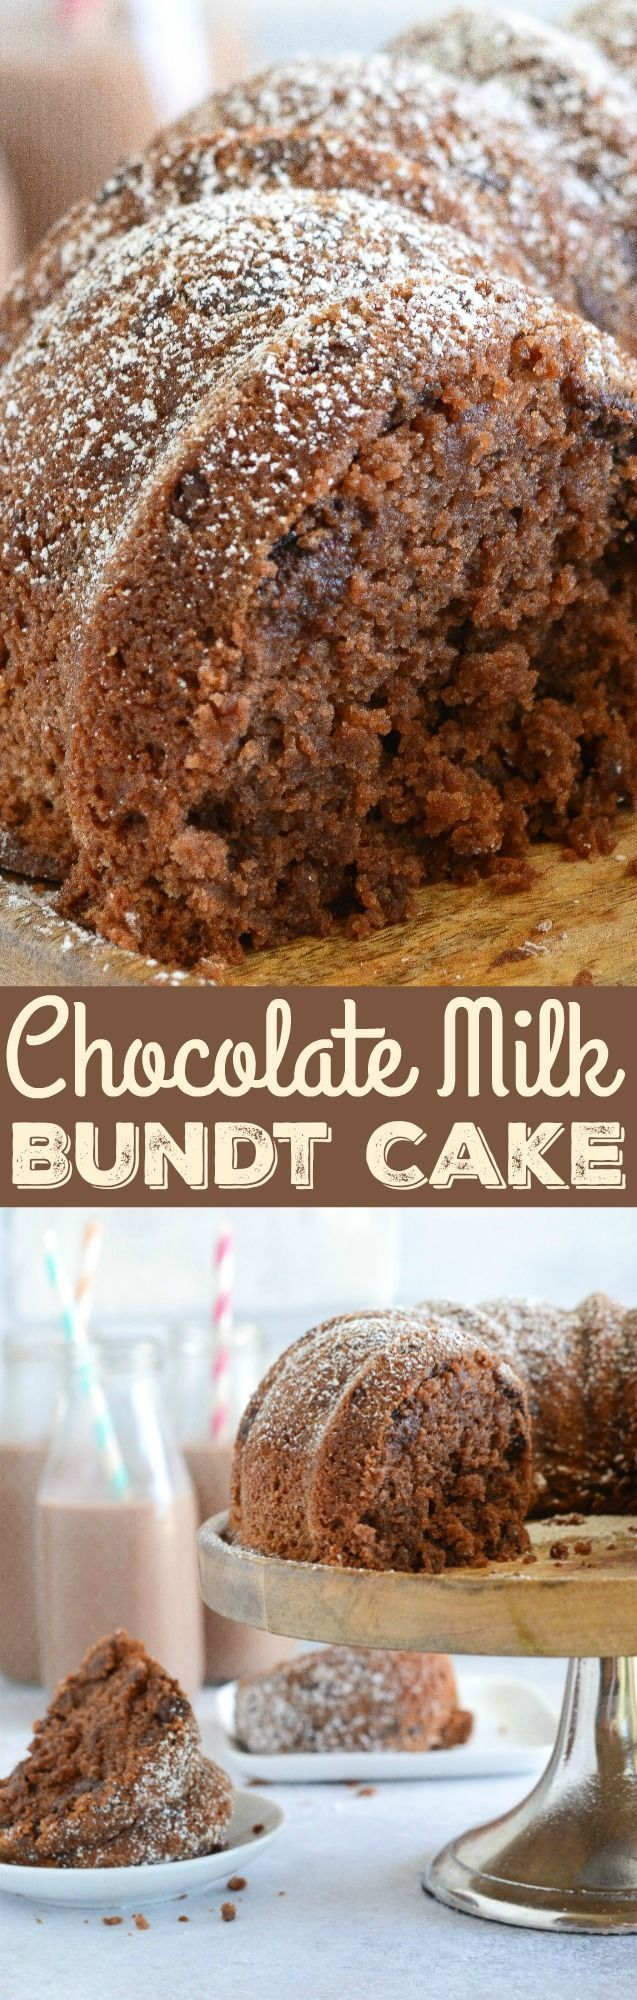 Chocolate Milk Bundt Cake: a sweet, moist homemade chocolate cake that is loaded with a2 Milk®️️ Chocolate 2% Reduced Fat Milk and chocolate chips to create the best bundt cake ever! #ad